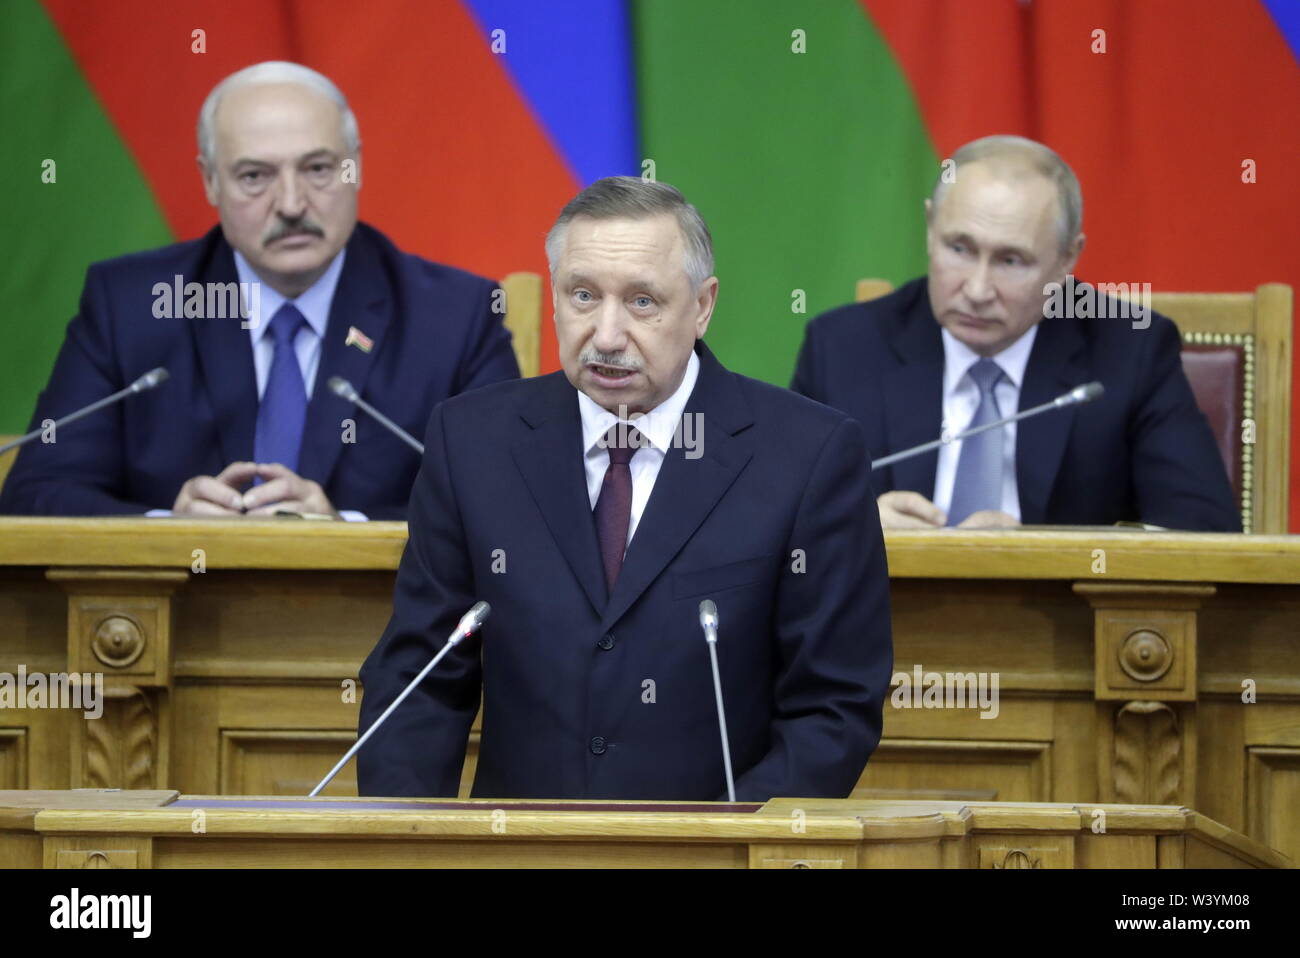 St Petersburg, Russia. 18th July, 2019. ST PETERSBURG, RUSSIA - JULY 18, 2019: Belarus' President Alexander Lukashenko and Russia's President Vladimir Putin (L-R back) listen as acting St Petersburg Governor Alexander Beglov addresses a plenary meeting at the 6th Belarus-Russia Forum of Regions, Tauride Palace. Mikhail Metzel/TASS Credit: ITAR-TASS News Agency/Alamy Live News - Stock Image